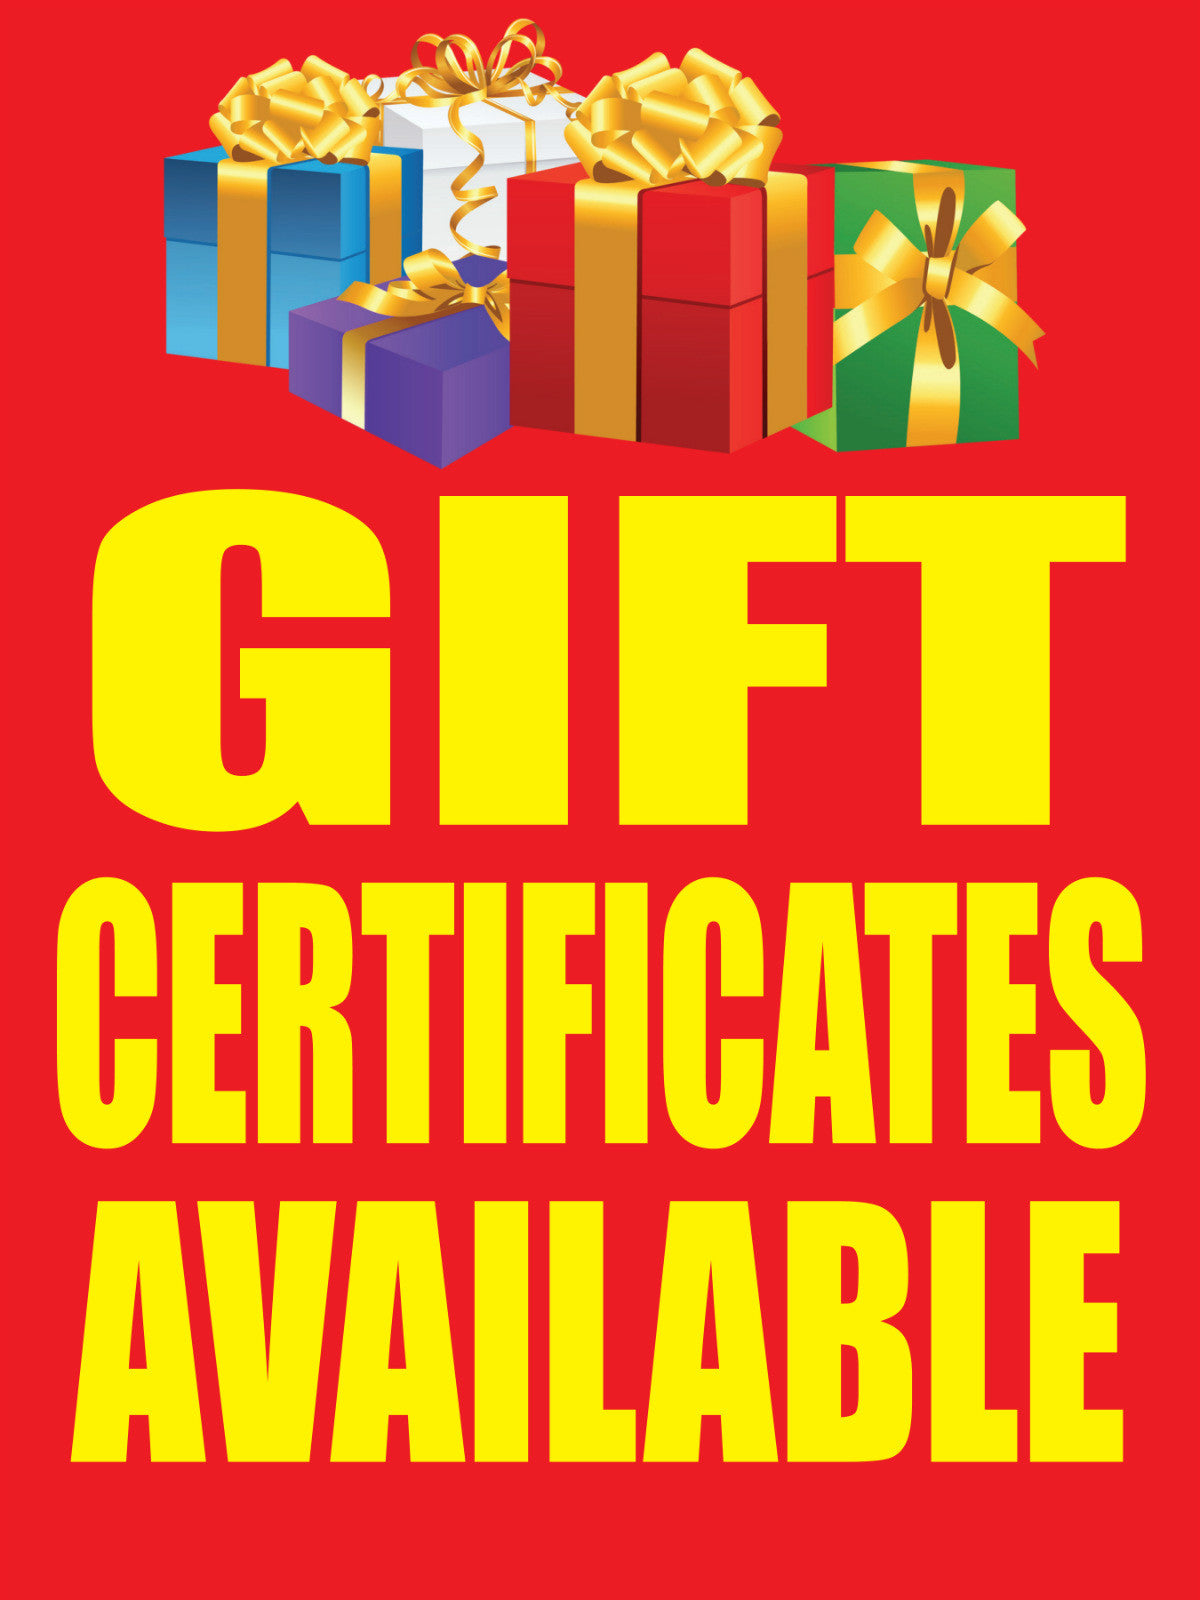 Gift certificates available 18x24 store business retail gift certificates available 18x24 store business retail promotion signs xflitez Gallery